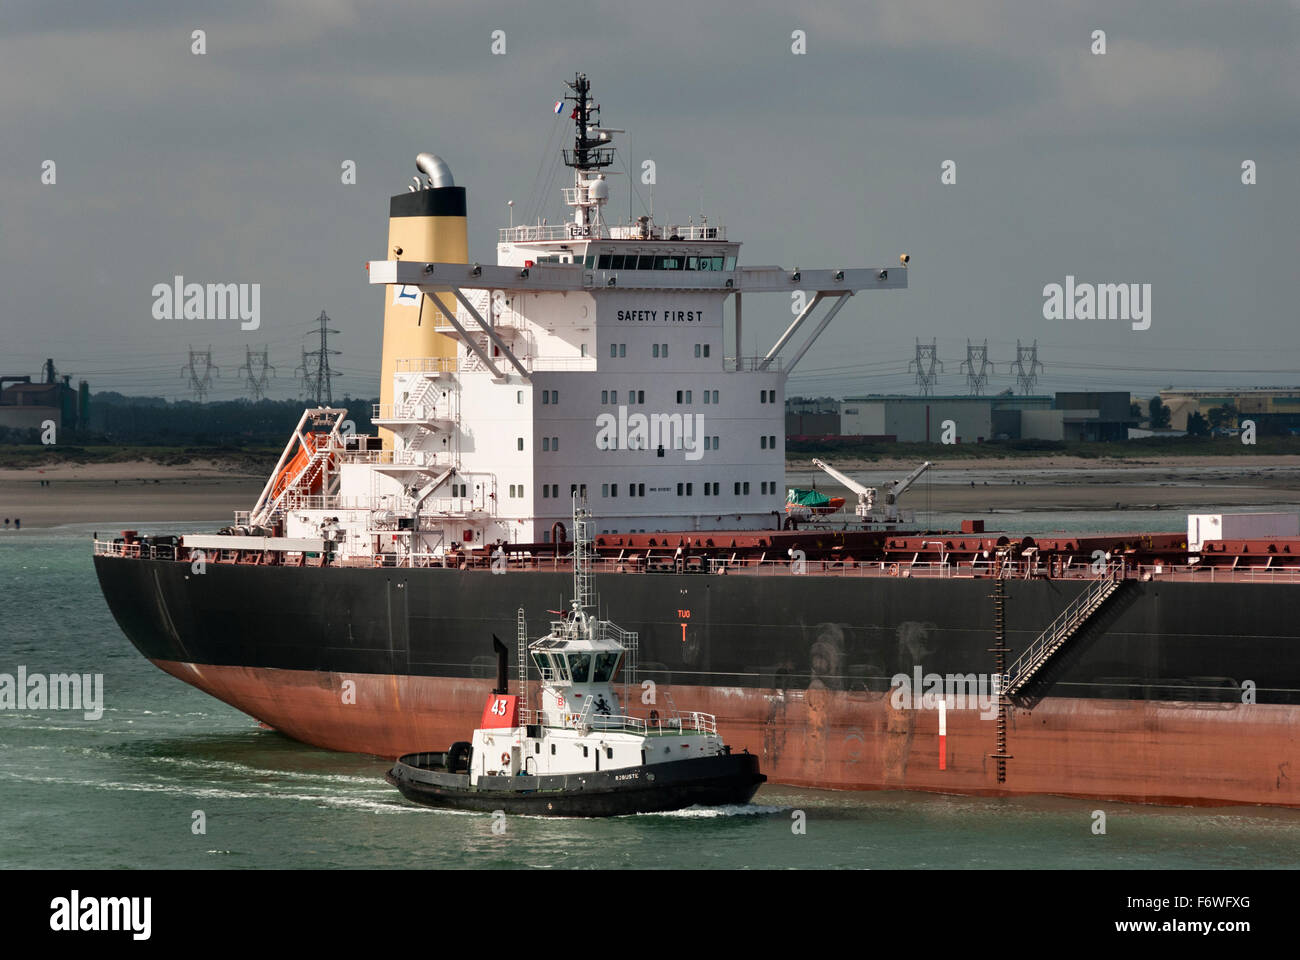 The Greek registered bulk carrier Epic coming out of the port of Le Havre, France - Stock Image